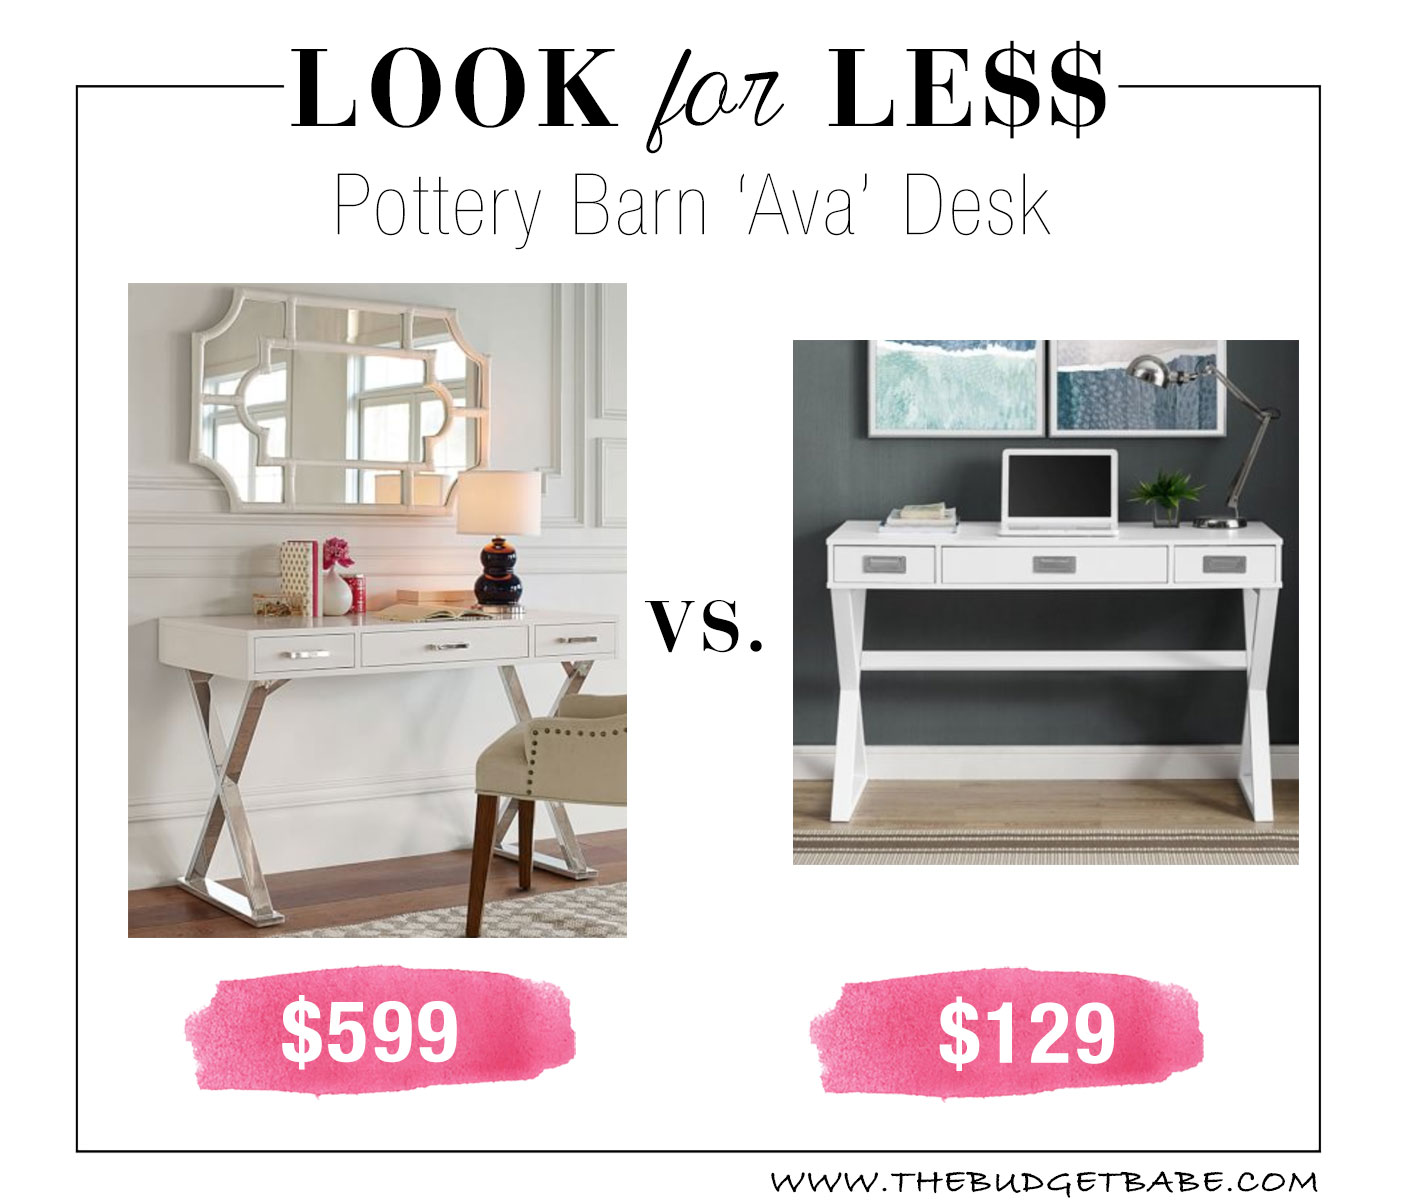 Pottery Barn 'Ava' Desk Lookalike at Walmart!